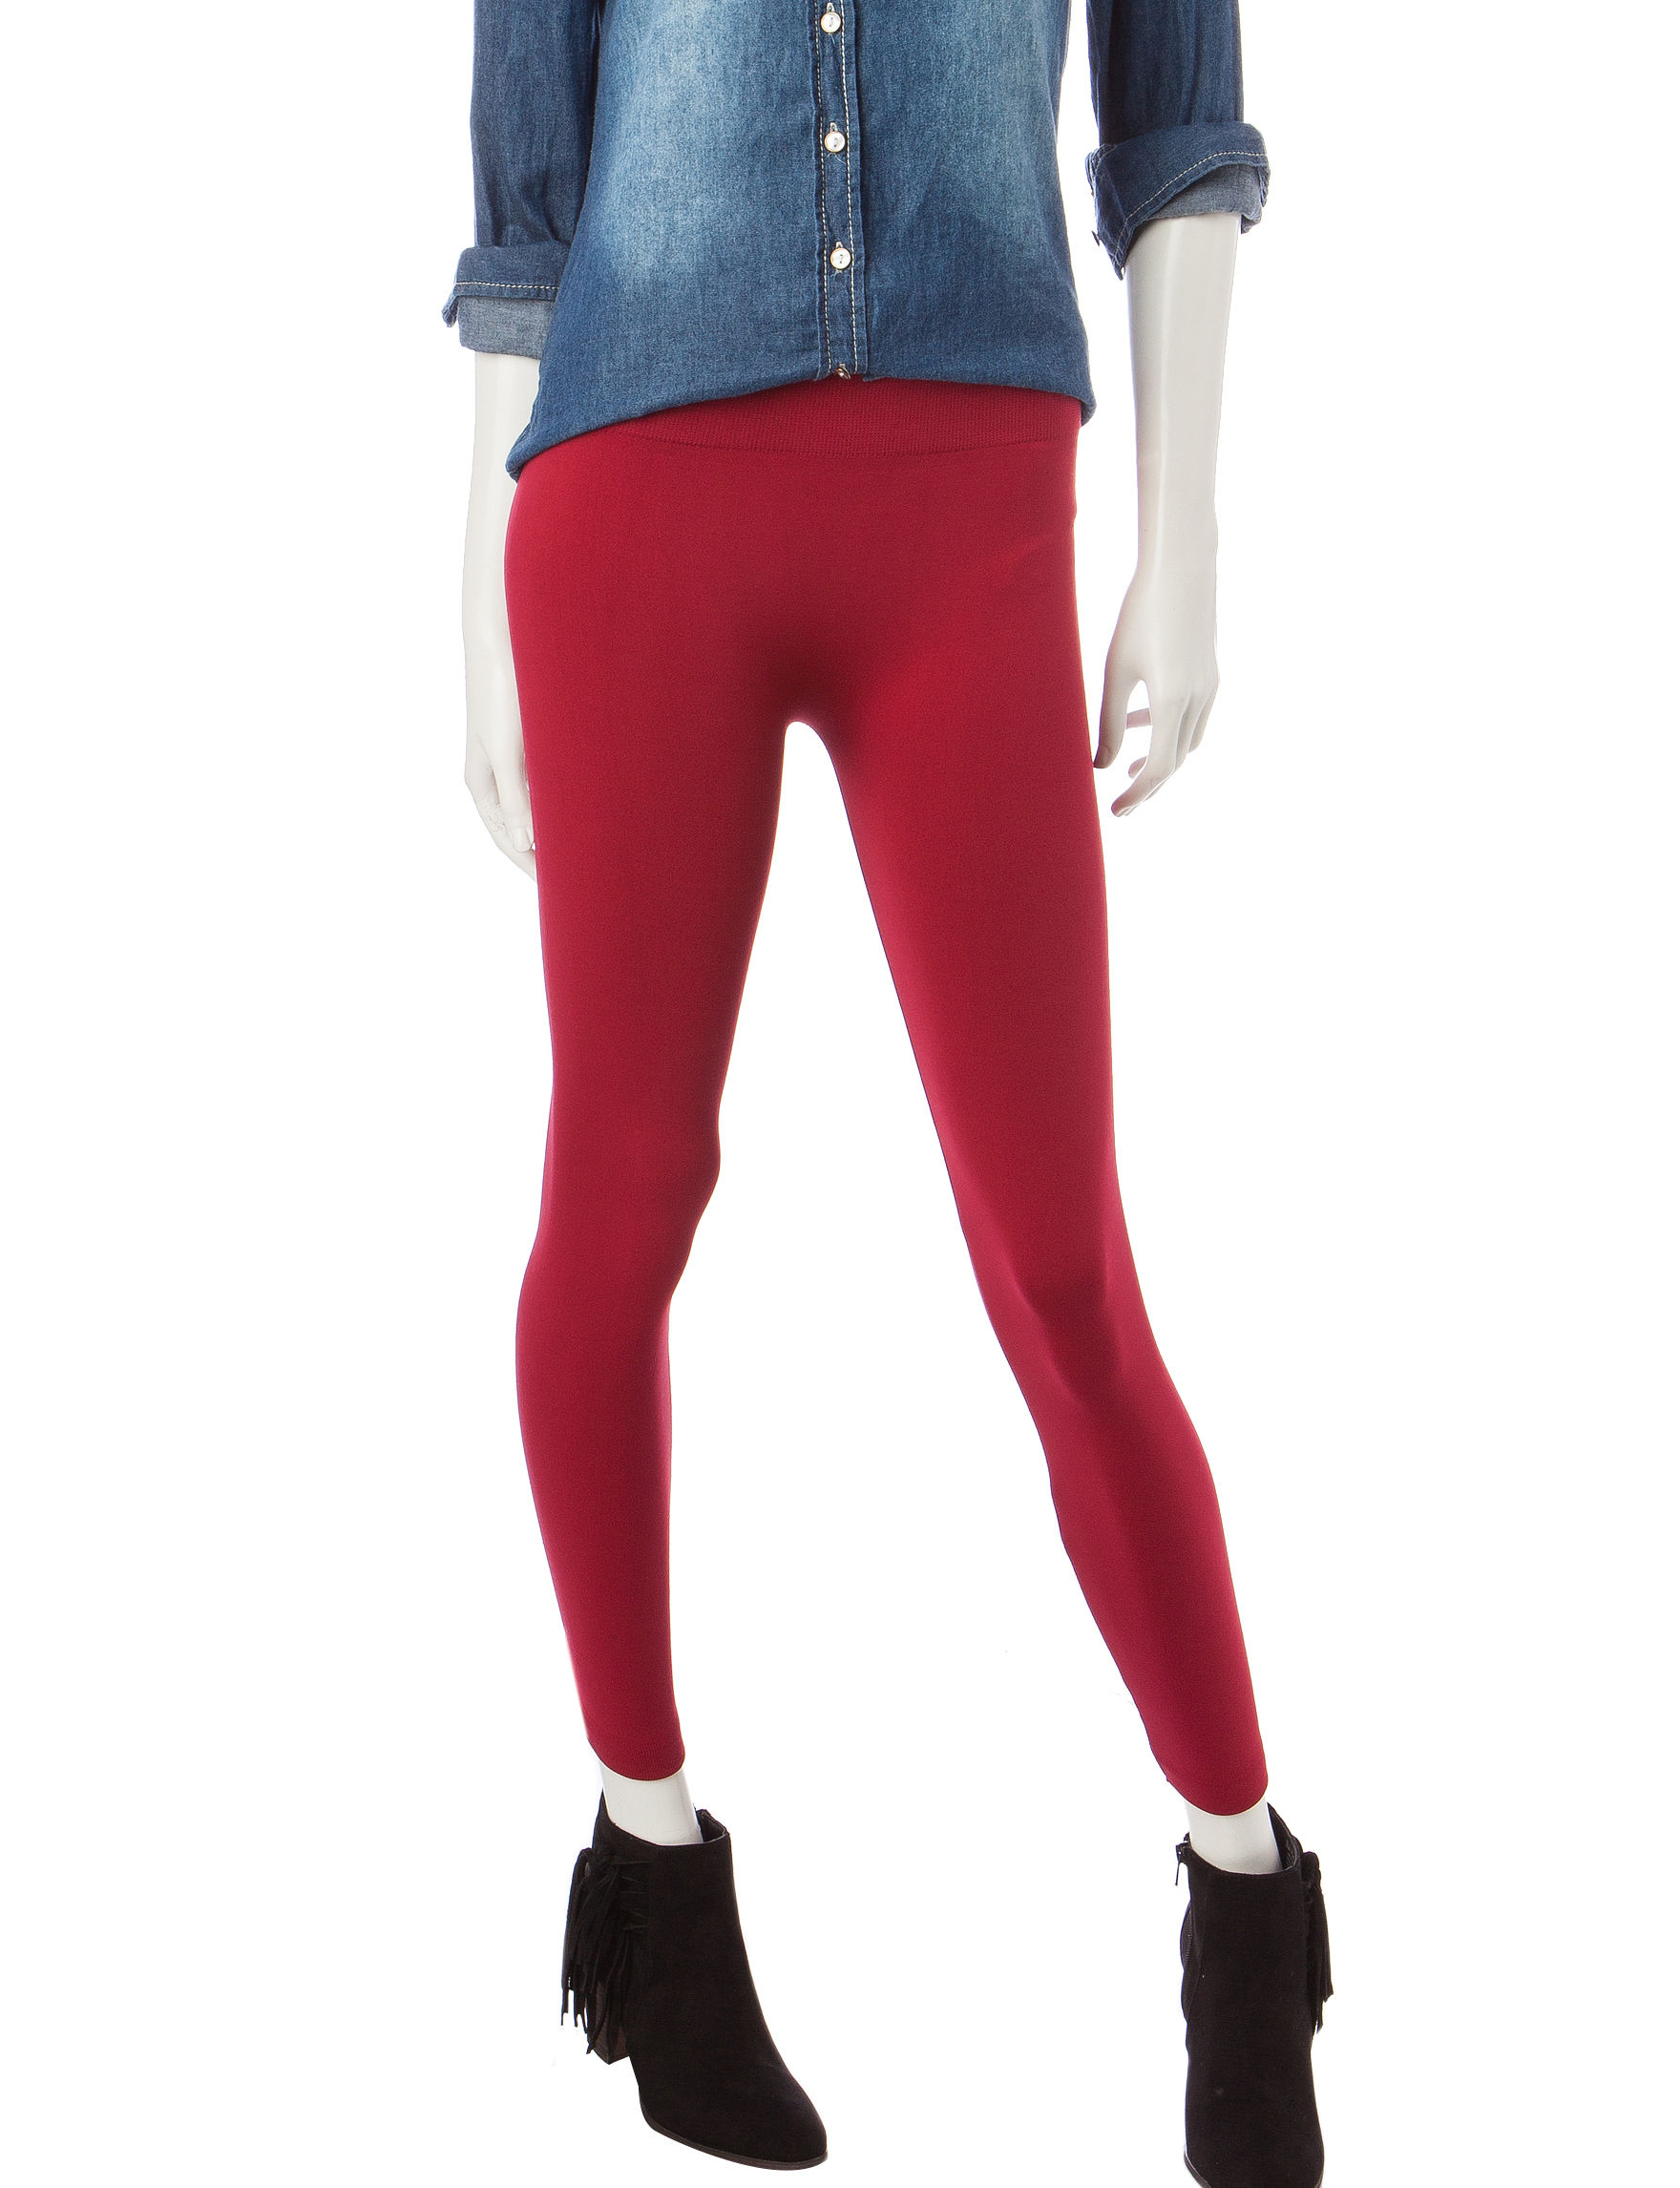 Extra Touch Red Leggings